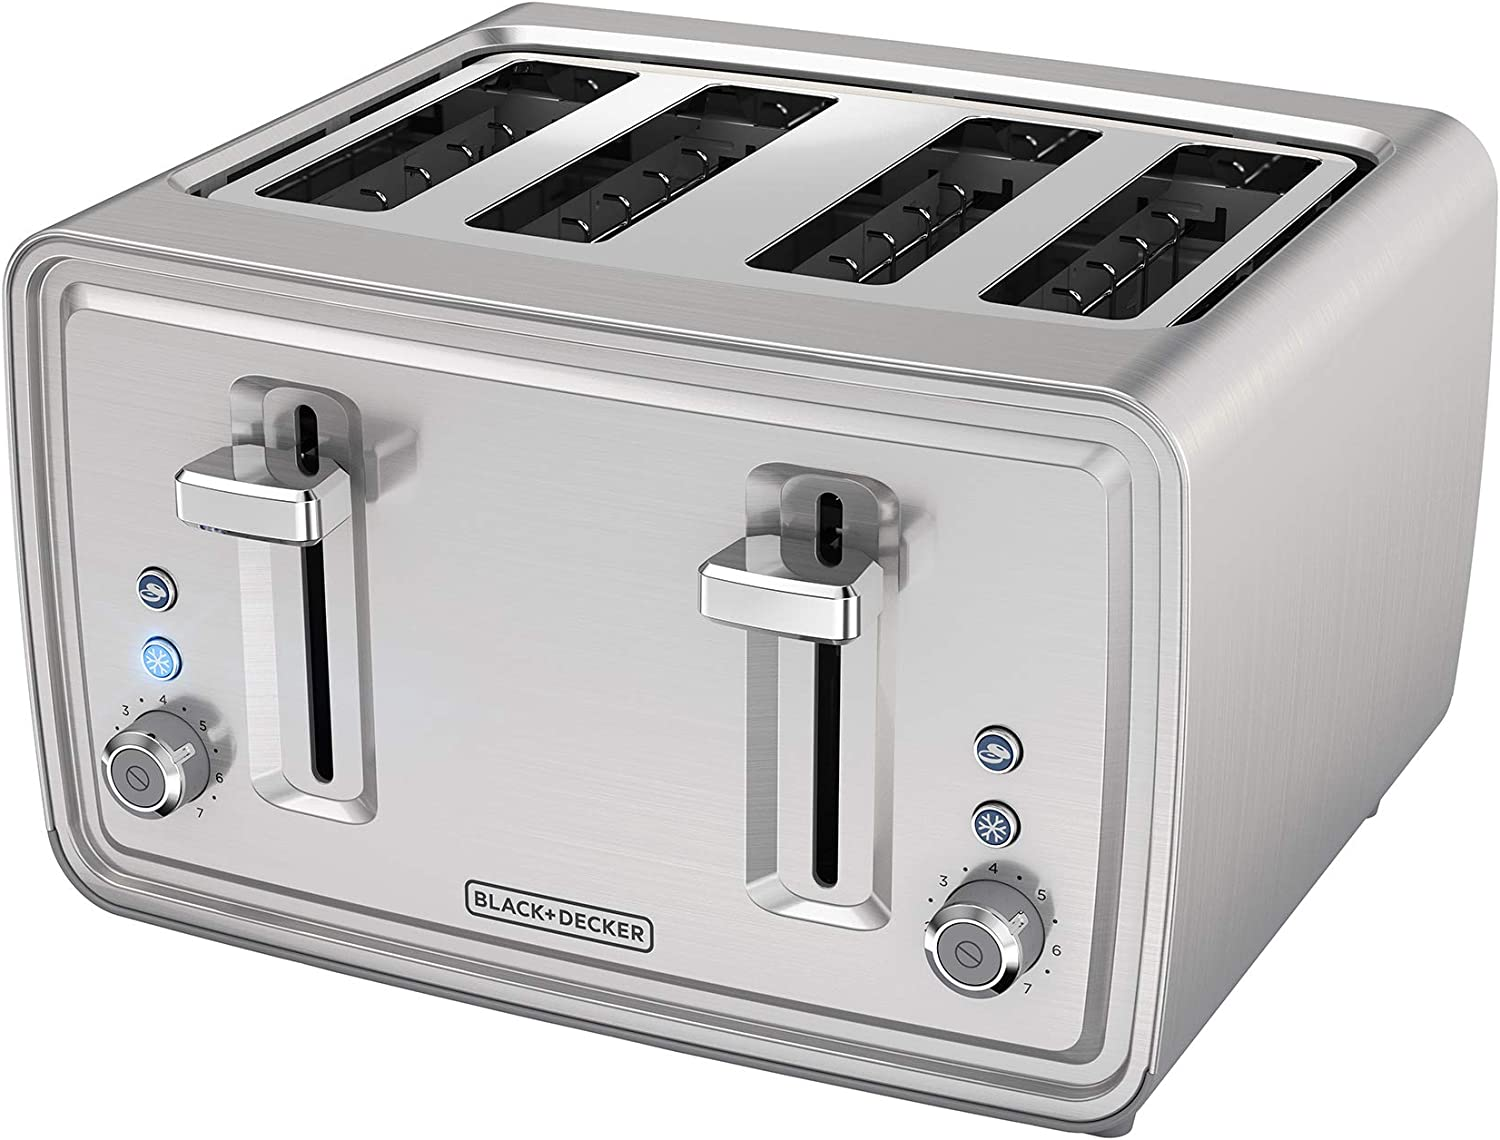 APPLICA/SPECTRUM BRANDS TR4900SSD Black & Decker Toaster, Medium, Silver